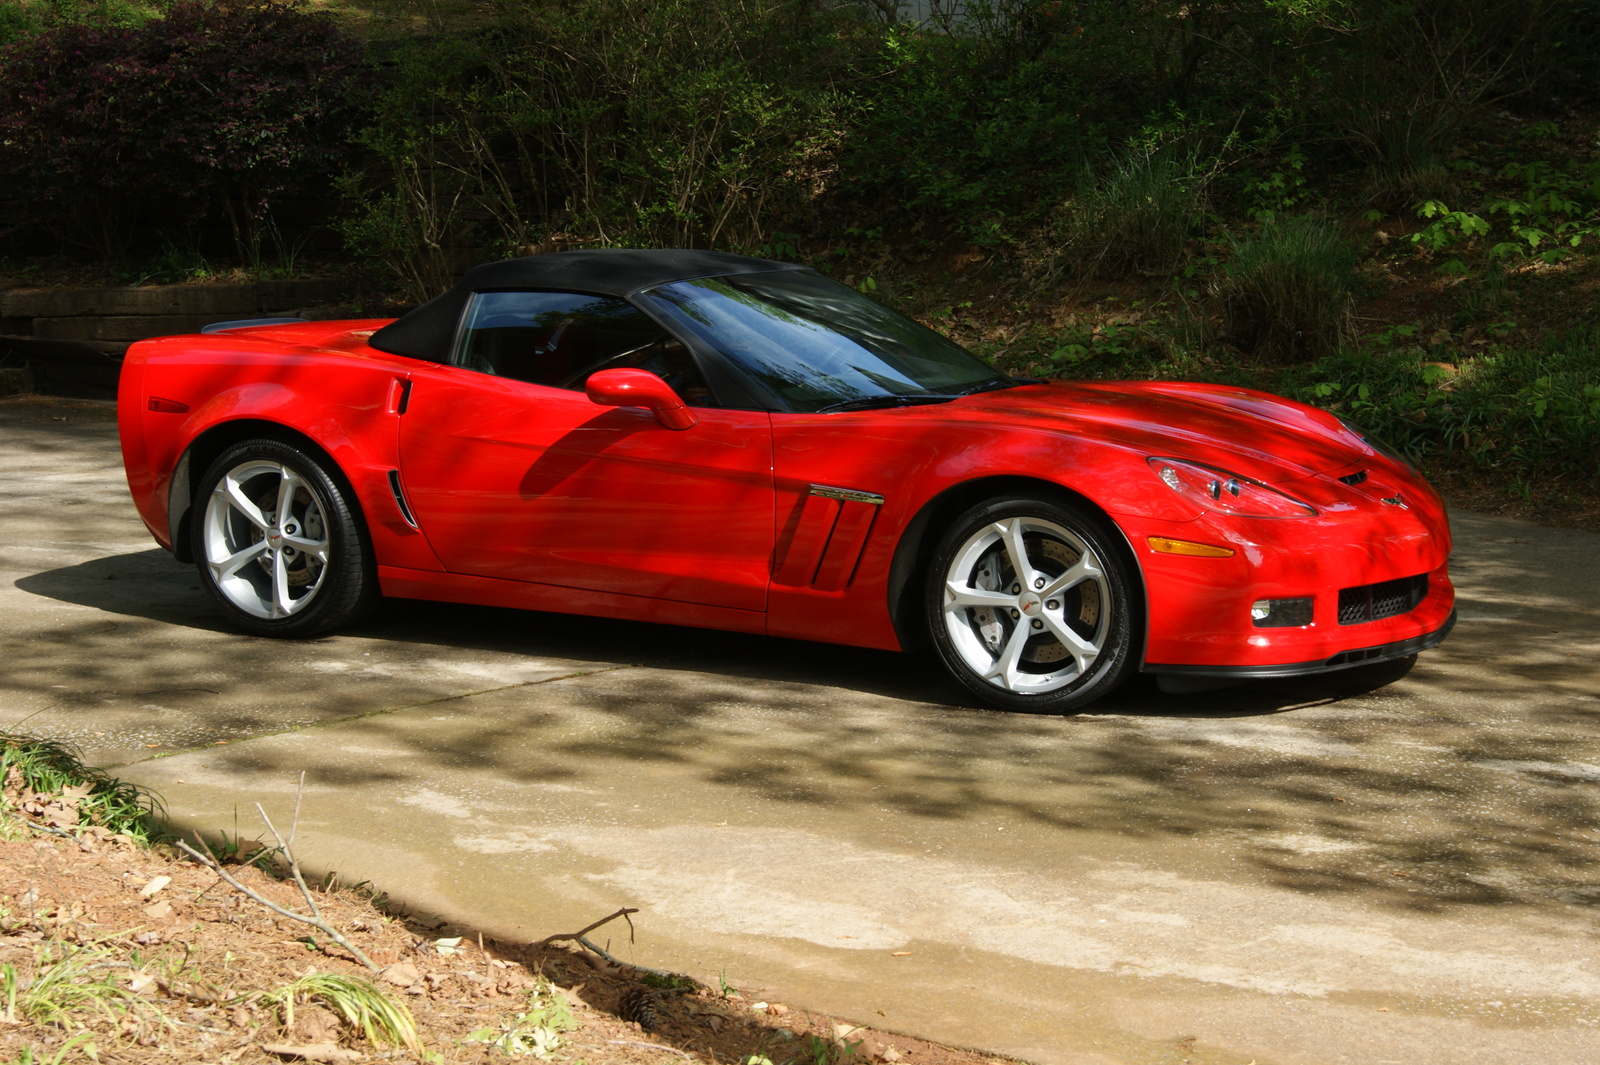 2013 corvette grand sport coupe sports car photos autos post. Black Bedroom Furniture Sets. Home Design Ideas